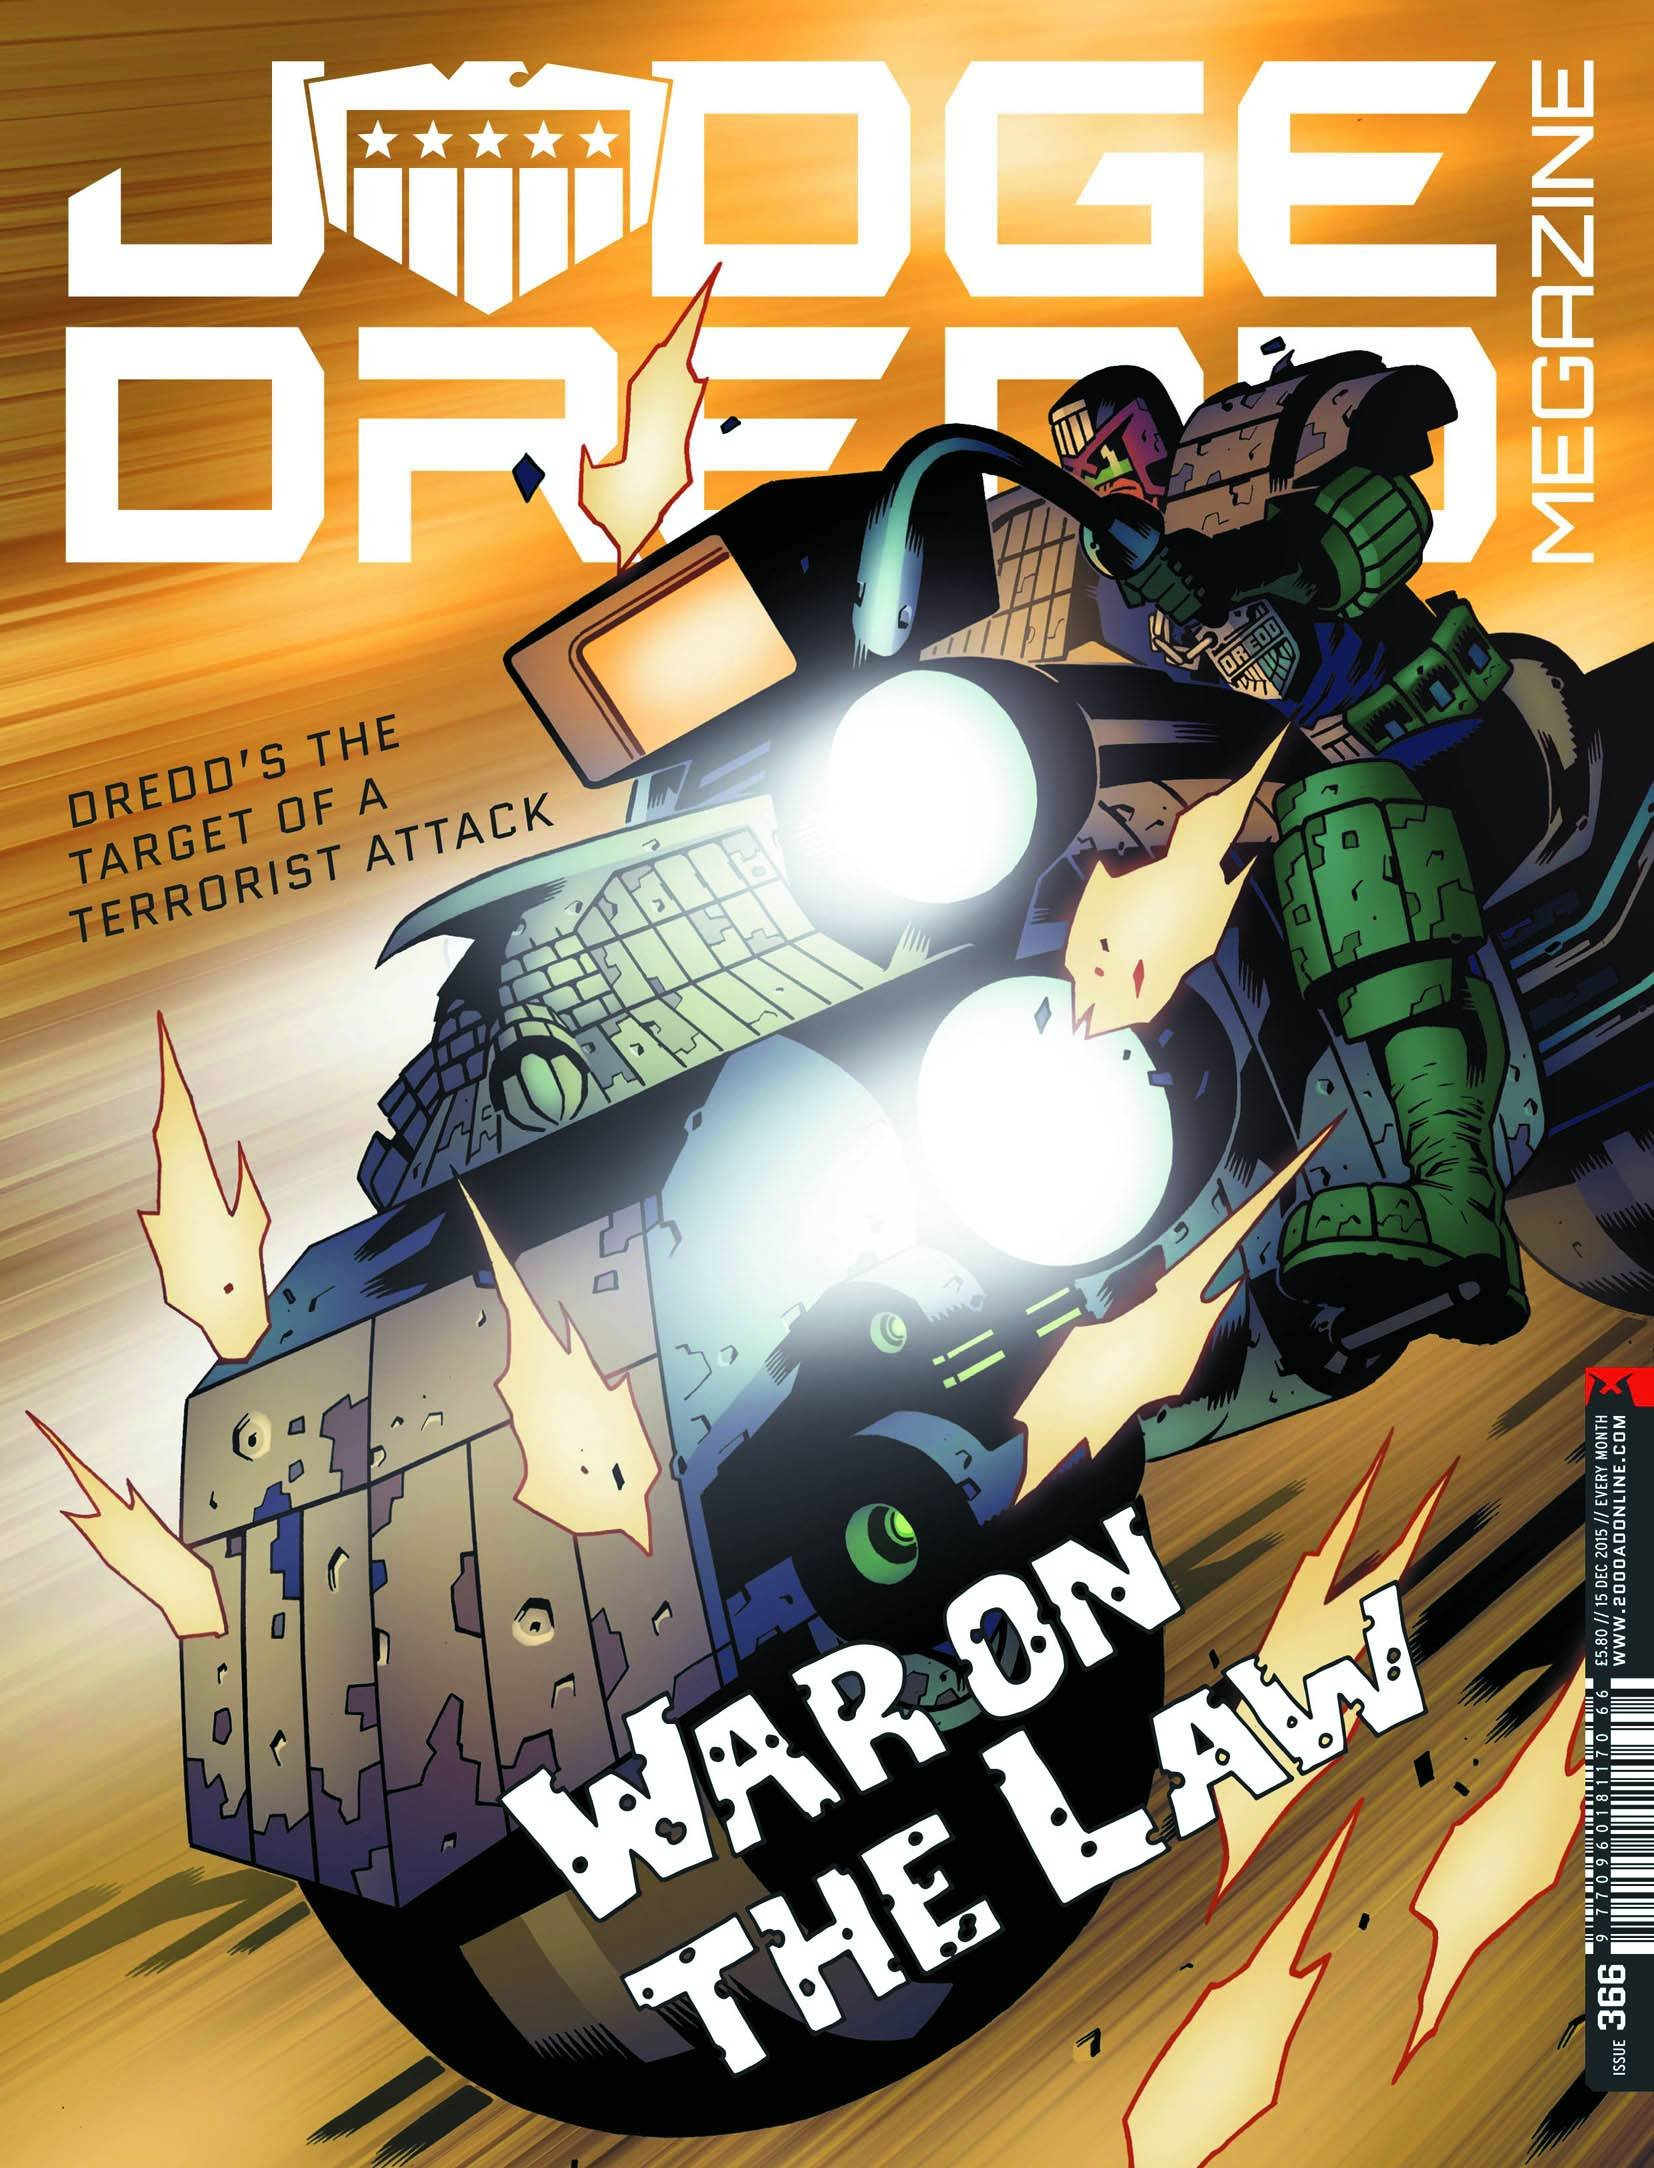 Read Online Judge Dredd Megazine #366 Dec 15 2015 pdf epub